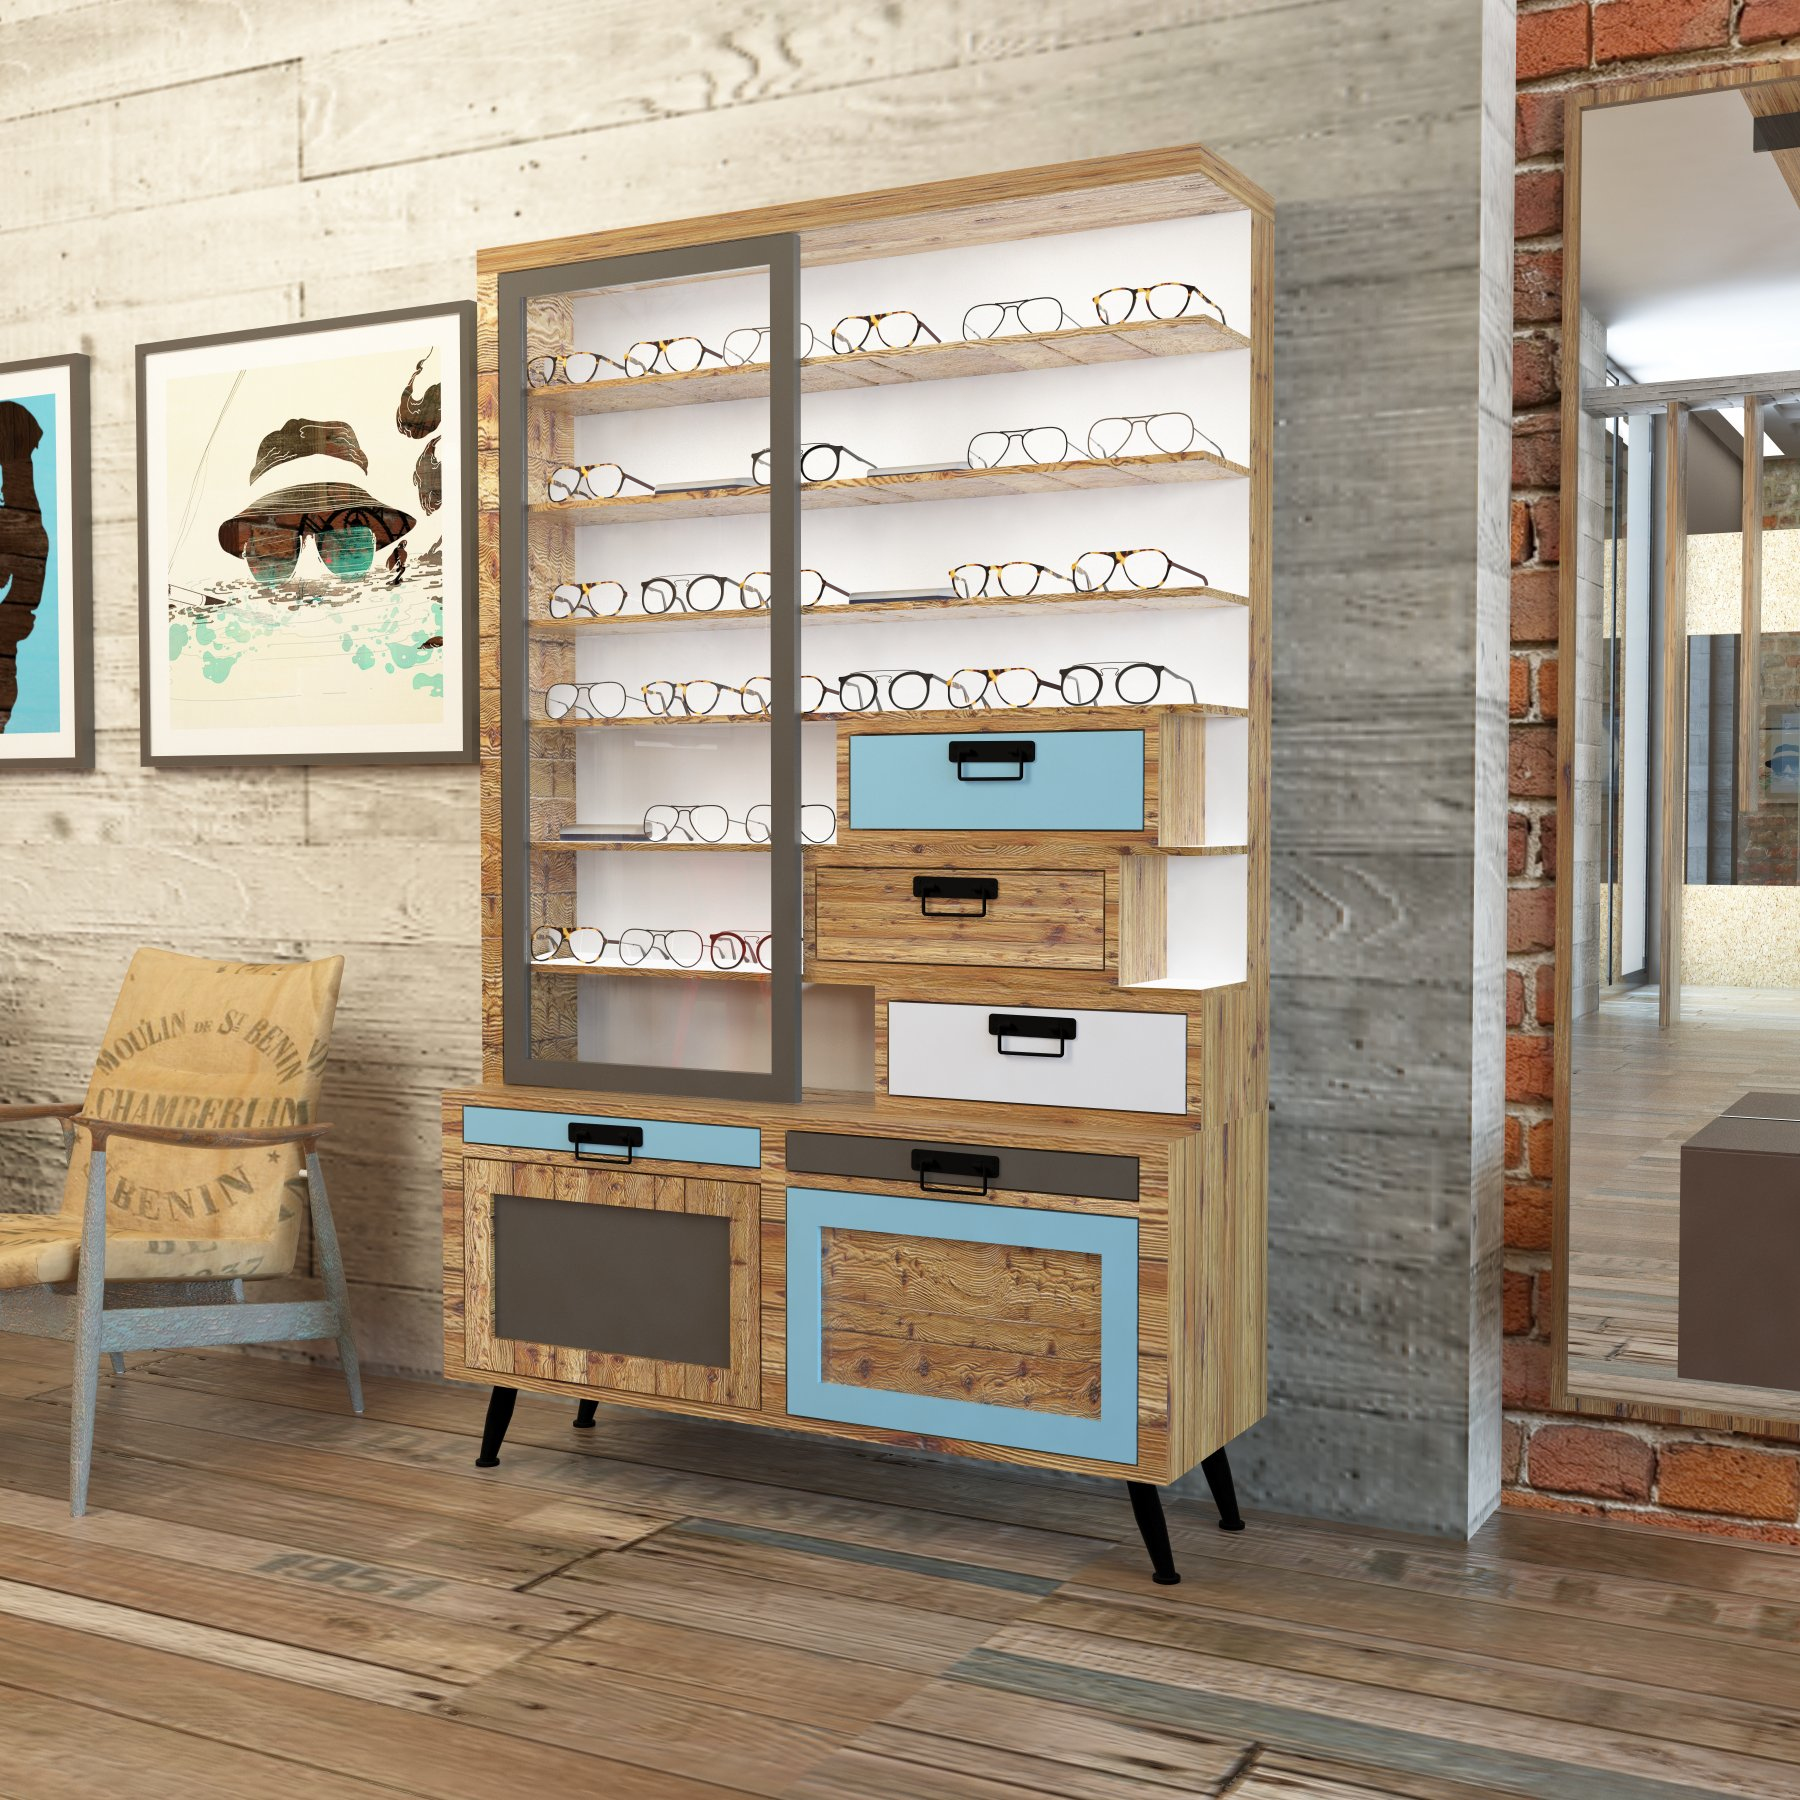 INDUSTRIAL CHIC   Have a look at a new display design. An industrial style, with custom reclaimed wood cabinetry. Sleek LED lighting is guaranteeing an optimized shadow free frame presentation.  VISION WORKS